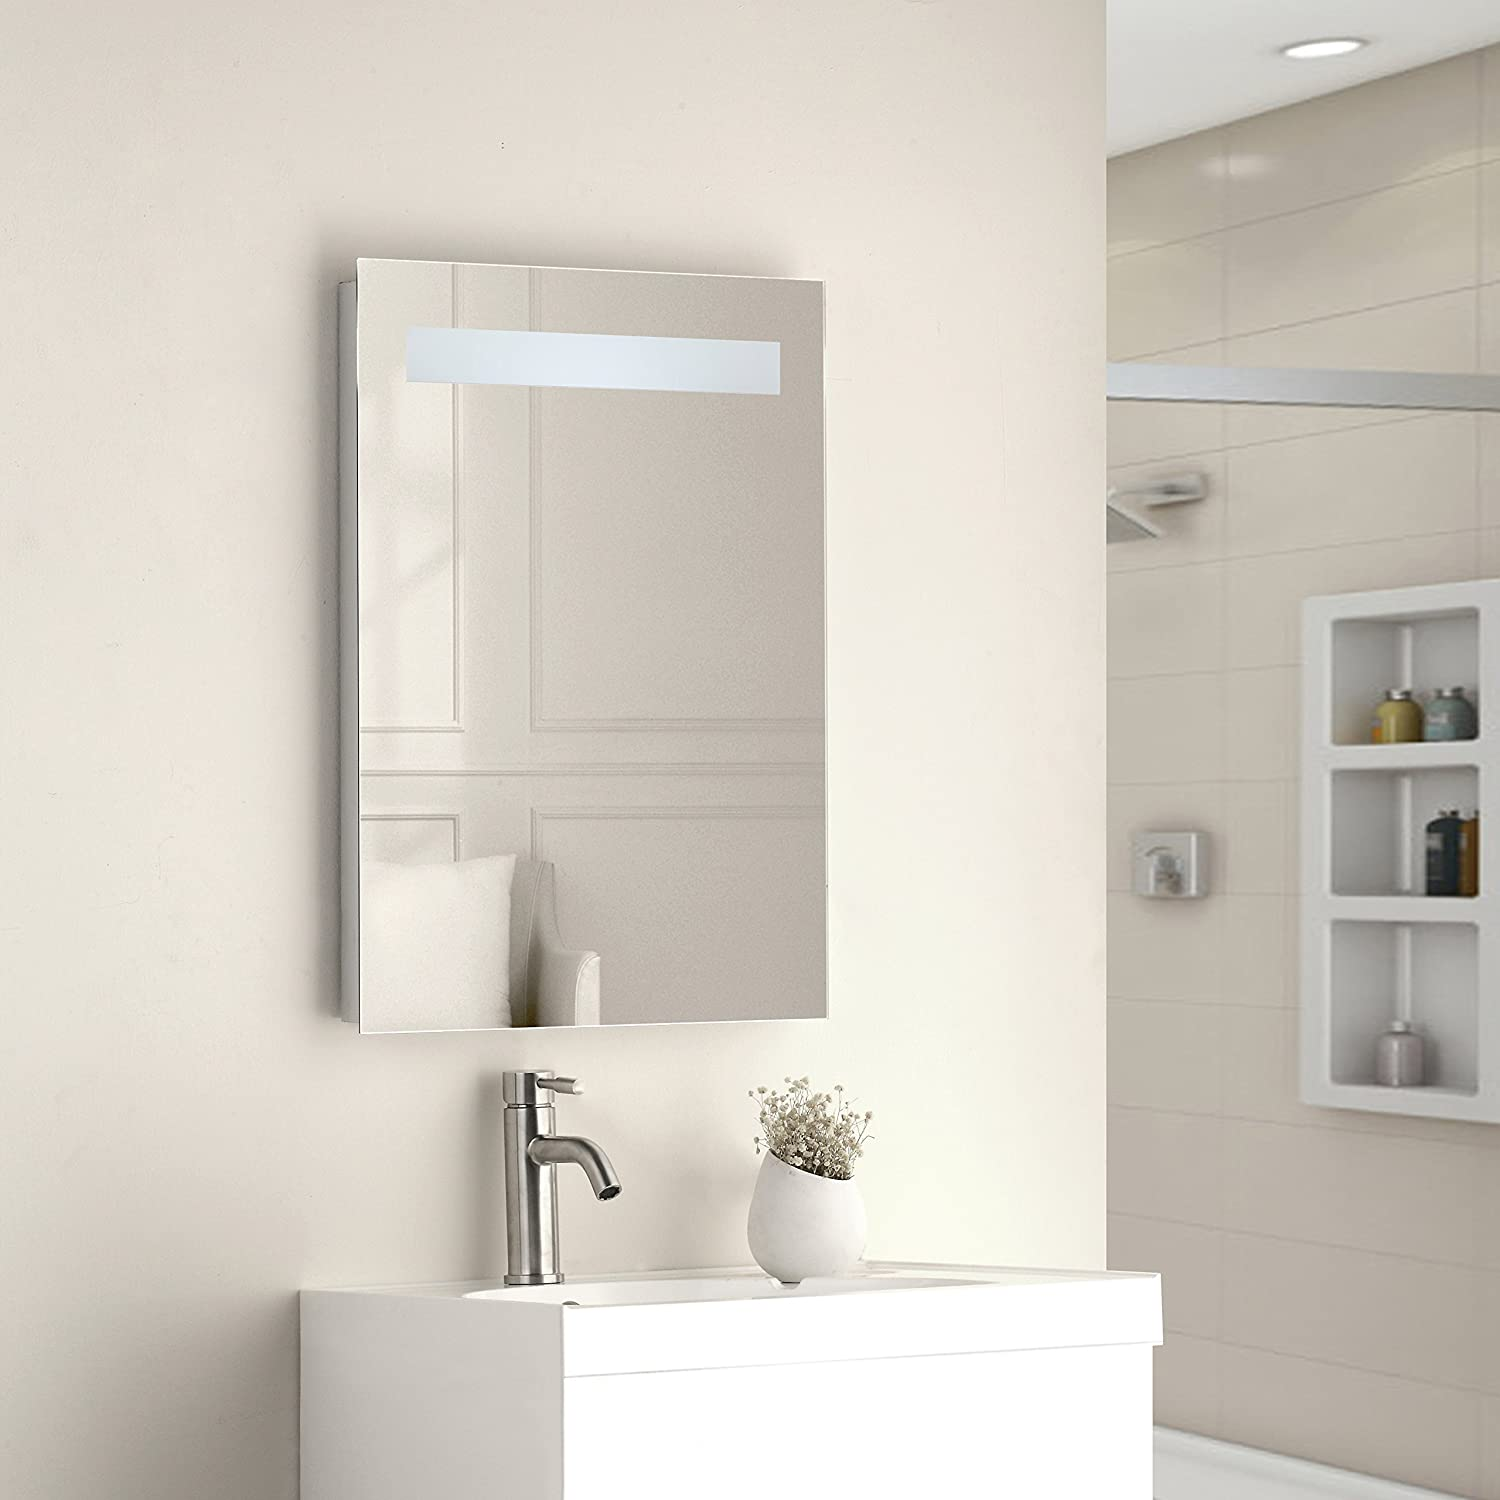 Tailored Plumb 700 x 500mm 80 LED Illuminated Touch Bathroom Mirror Demister With Shaver Socket IP44